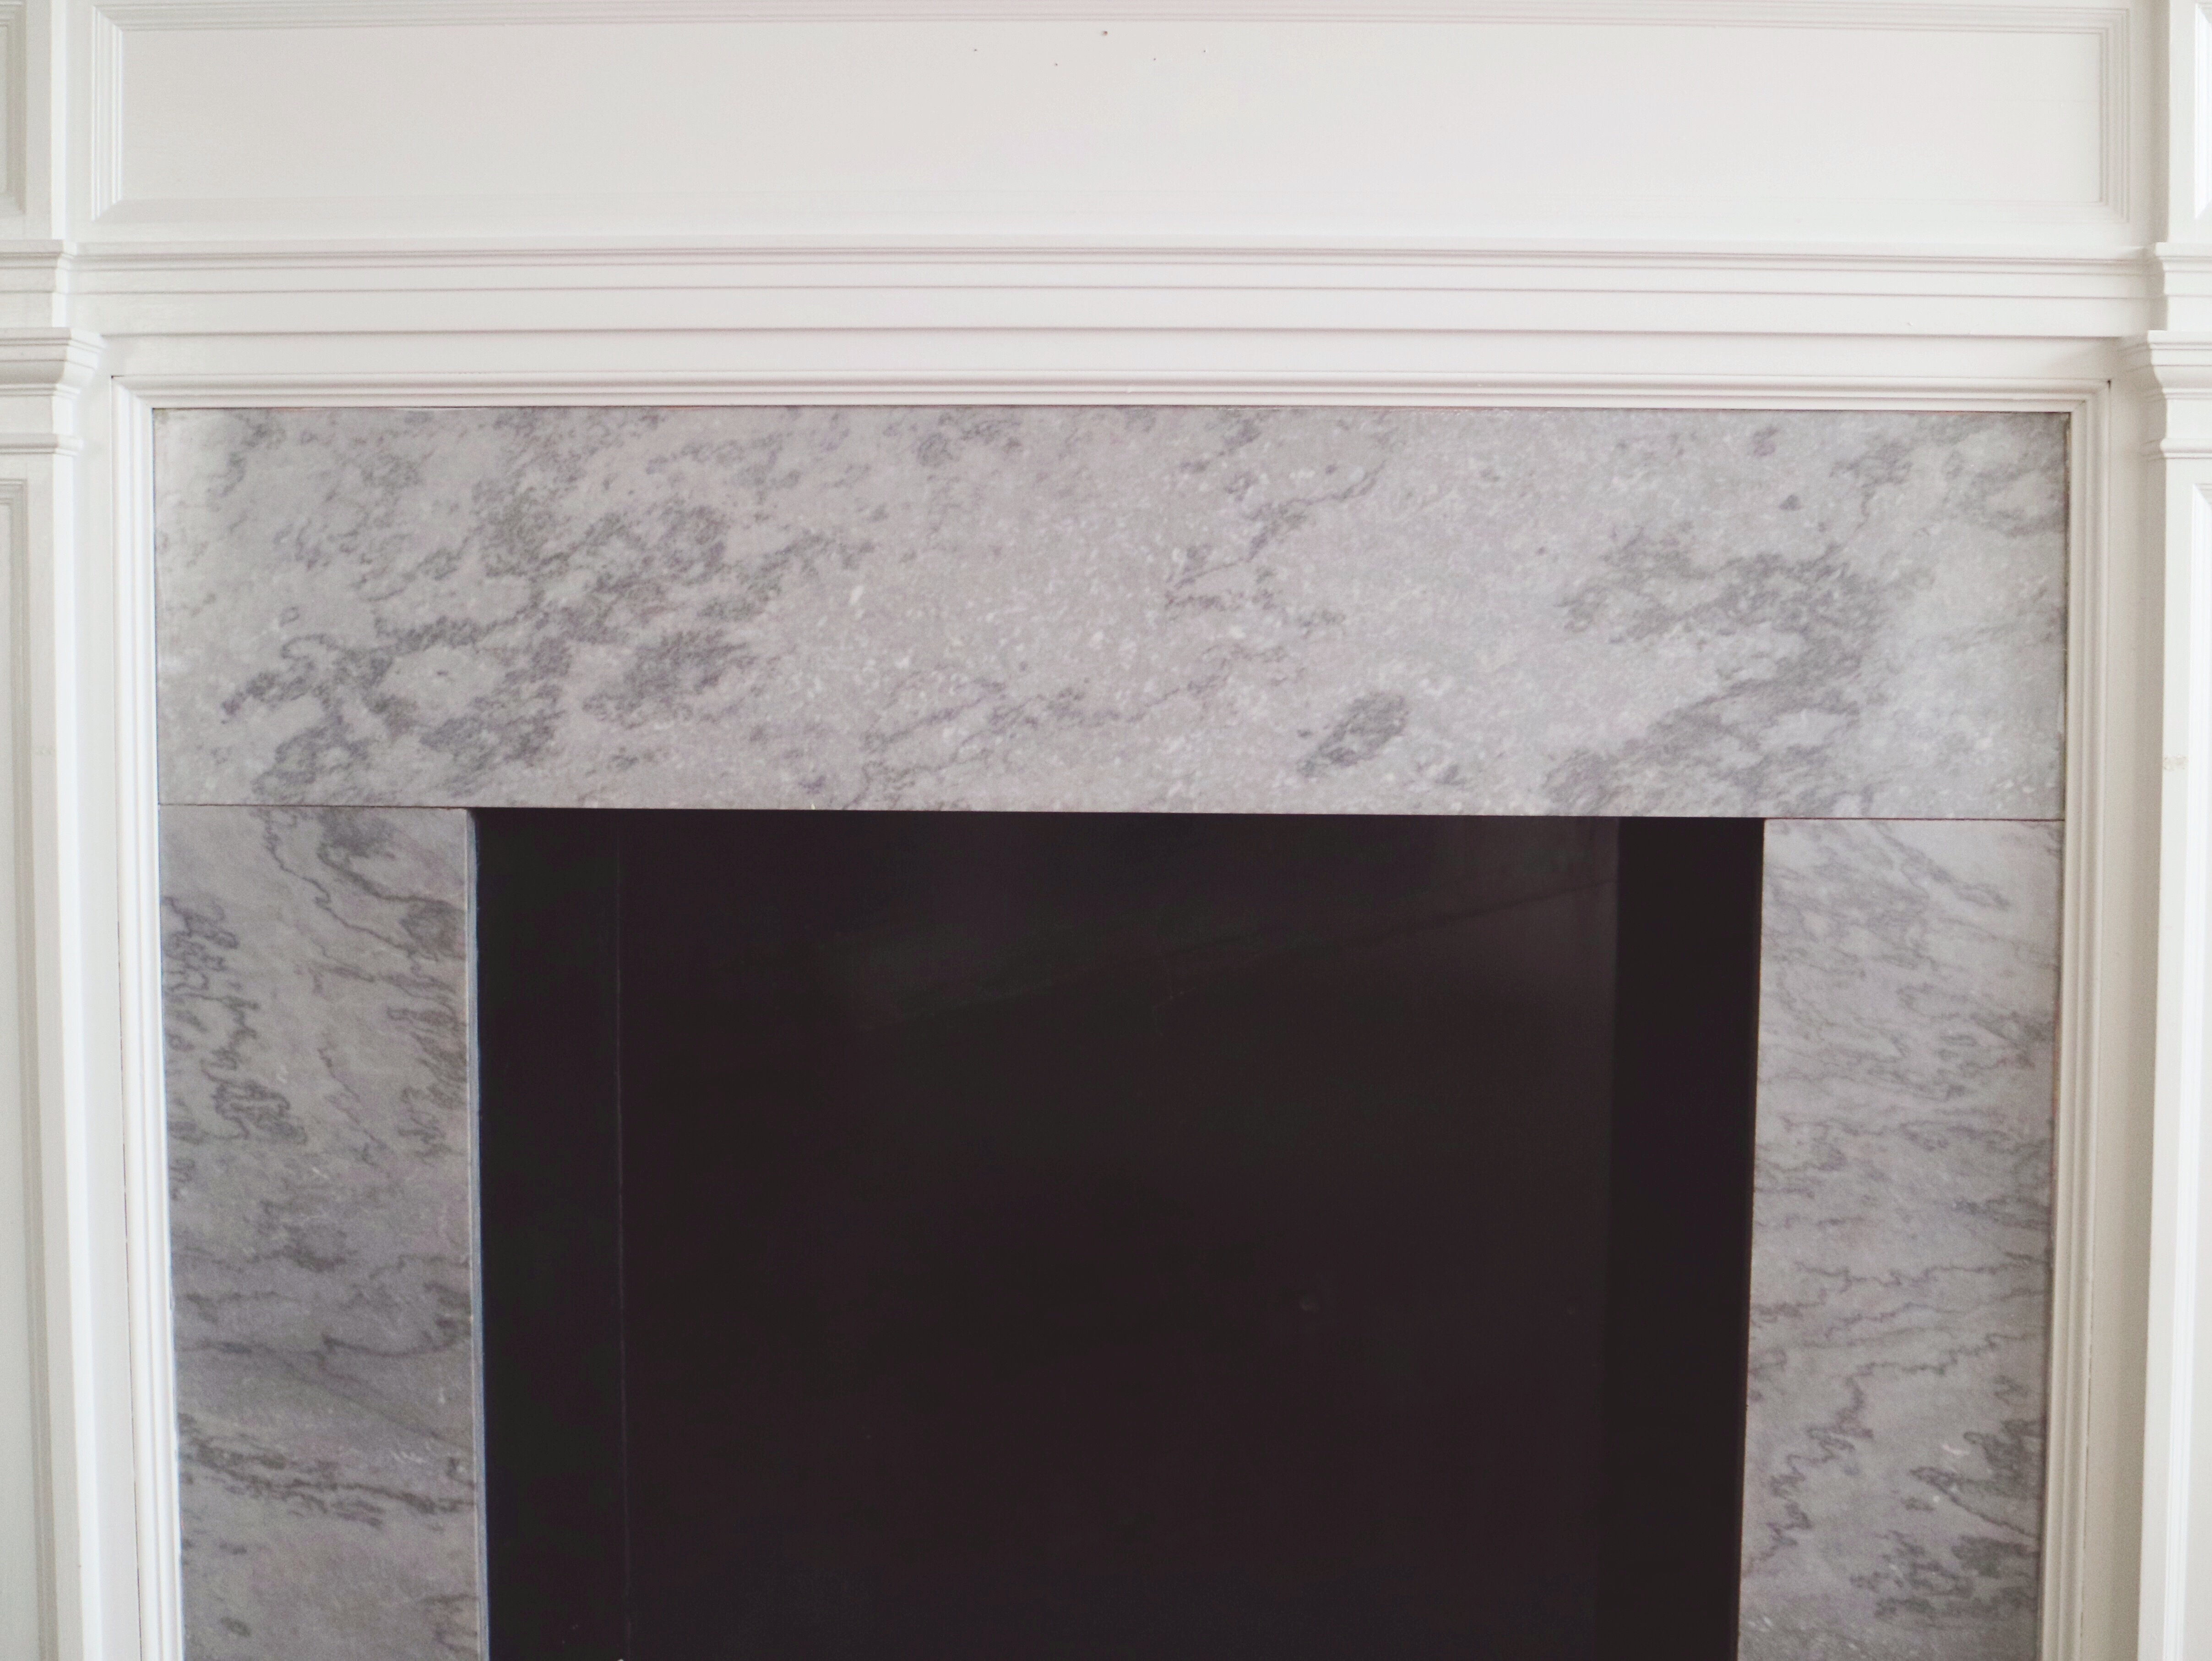 Diy chalkboard fireplace hallow the fireplace itself is boarded up with black painted wood even though i knew it was going to be a design challenge it was one of the reasons i fell in solutioingenieria Image collections